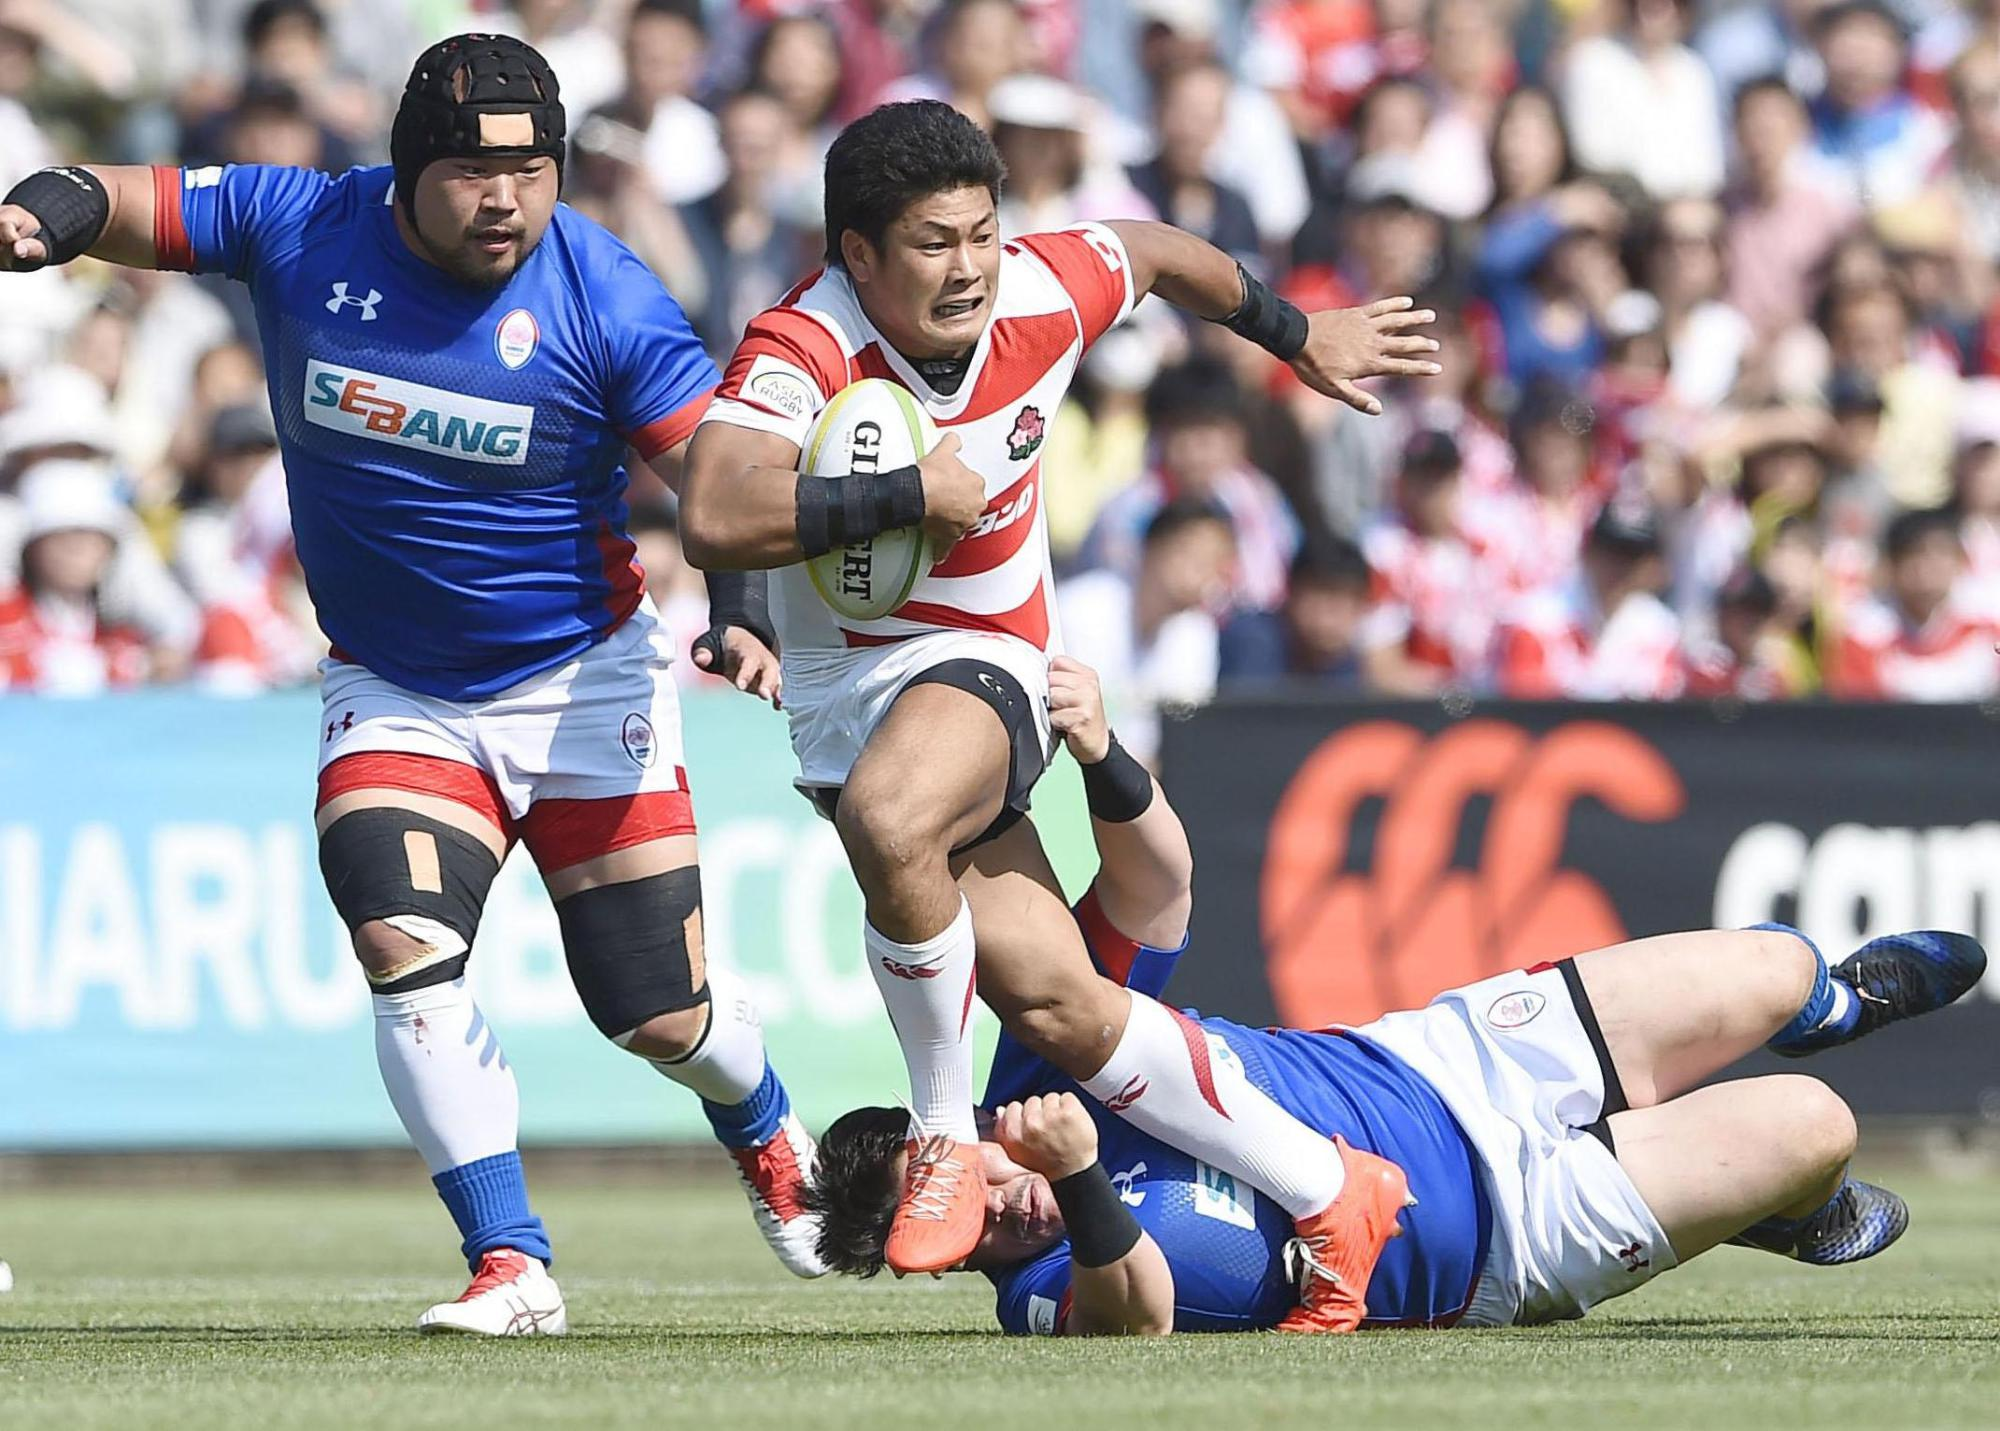 Japan's Ryuji Noguchi breaks through a tackle during the Brave Blossoms' 80-10 win over South Korea on Saturday in the Asia Rugby Championship at Prince Chichibu Memorial Rugby Ground. | KYODO